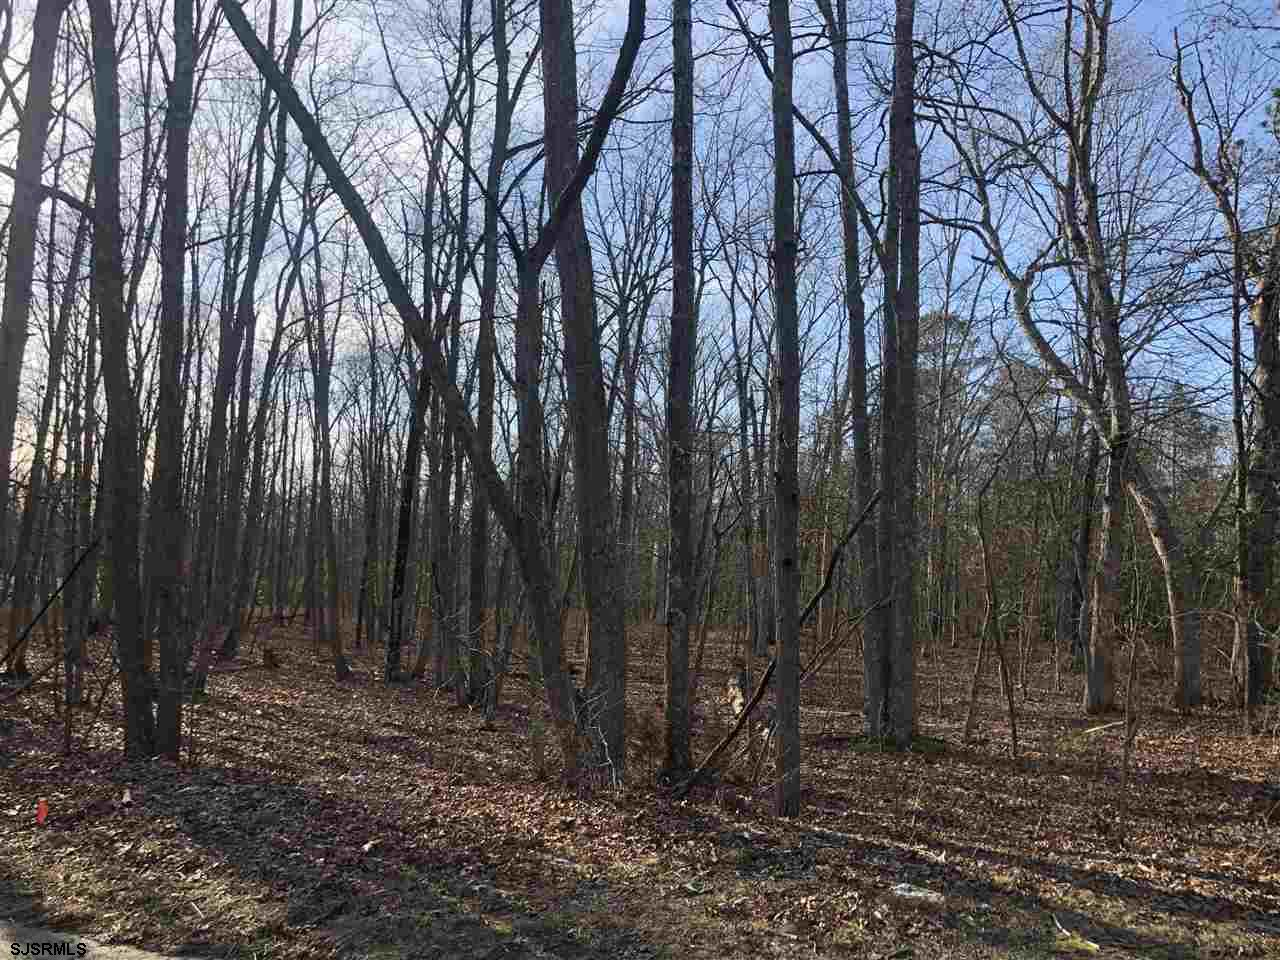 "Large Beautiful wooded lot. Nestled between two single family homes. Nice quiet street. This lot is a few blocks from 'Funny Farm Rescue"". Buildable questions and possibilities should be inquired through the township and Pinelands. Not through the seller. Seller shall make no warrants. There is no Yard sign. The land is sandwiched in between block 501, lot 1 (6427 Jefferson) and block 501 lot 3 (6455 Jefferson)"